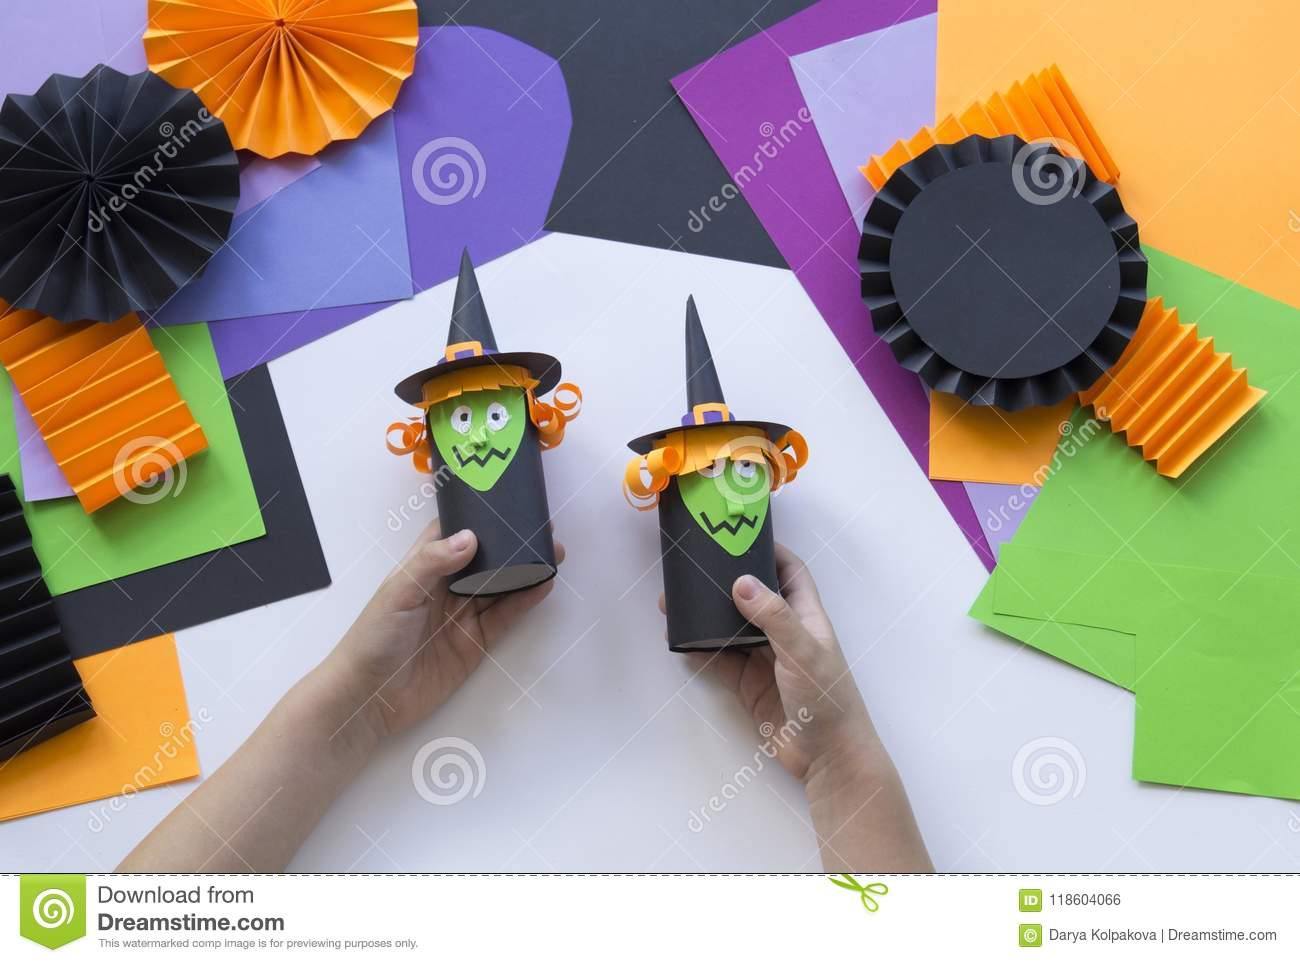 Baby Makes Halloween Witch Doll From Paper By Hands.Creative DIY For Kids. Home  Decor Project Party.Halloween Crafts Inspiration.